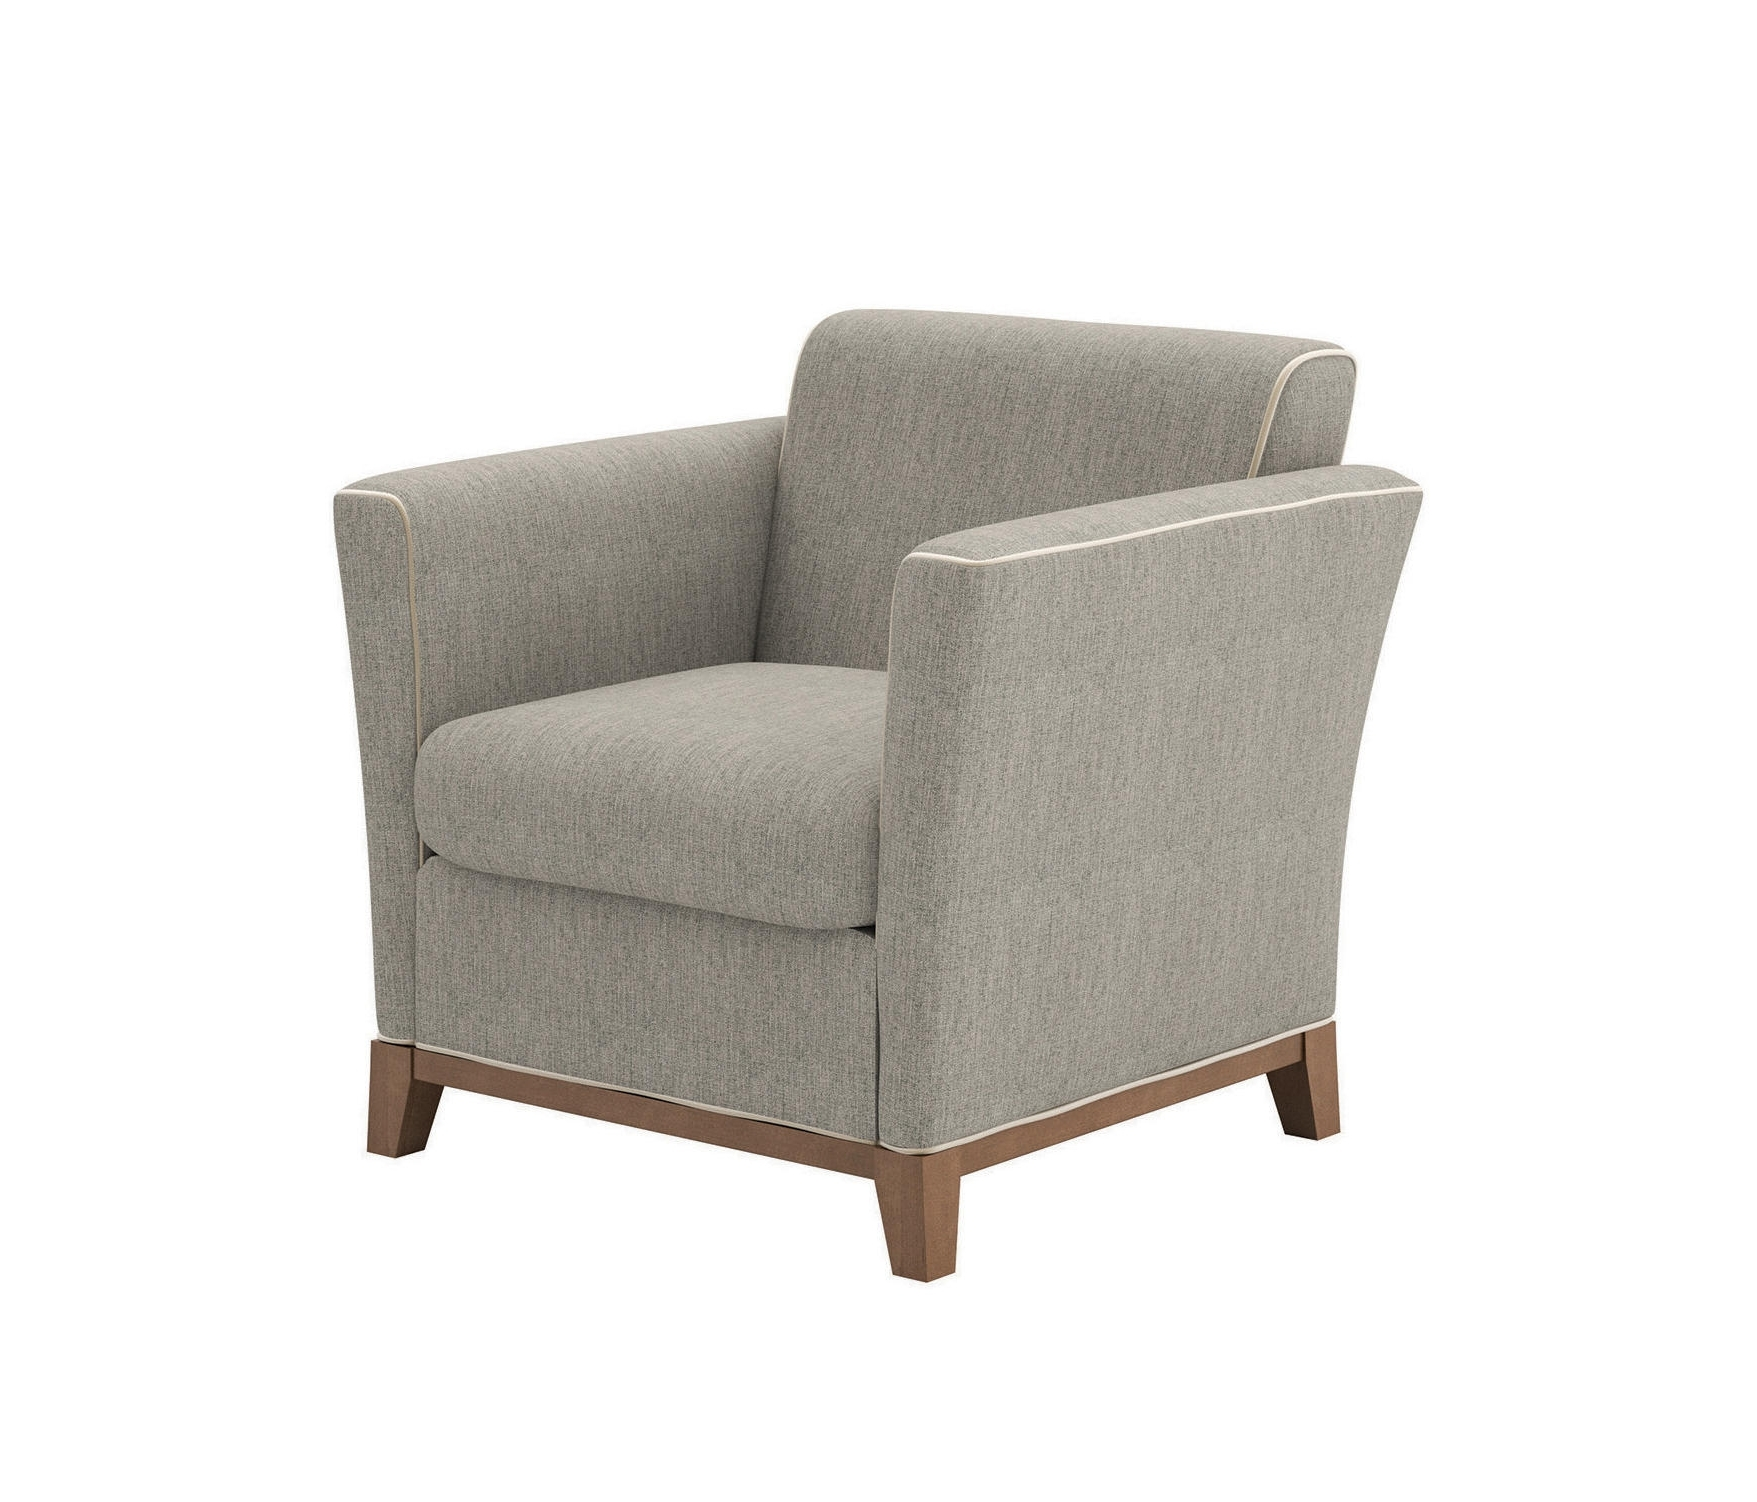 Fashionable Lounge Chair : With Ottoman Cool Chaise Lounge Leather Chaise With Chaise Lounge Chairs Under $ (View 6 of 15)